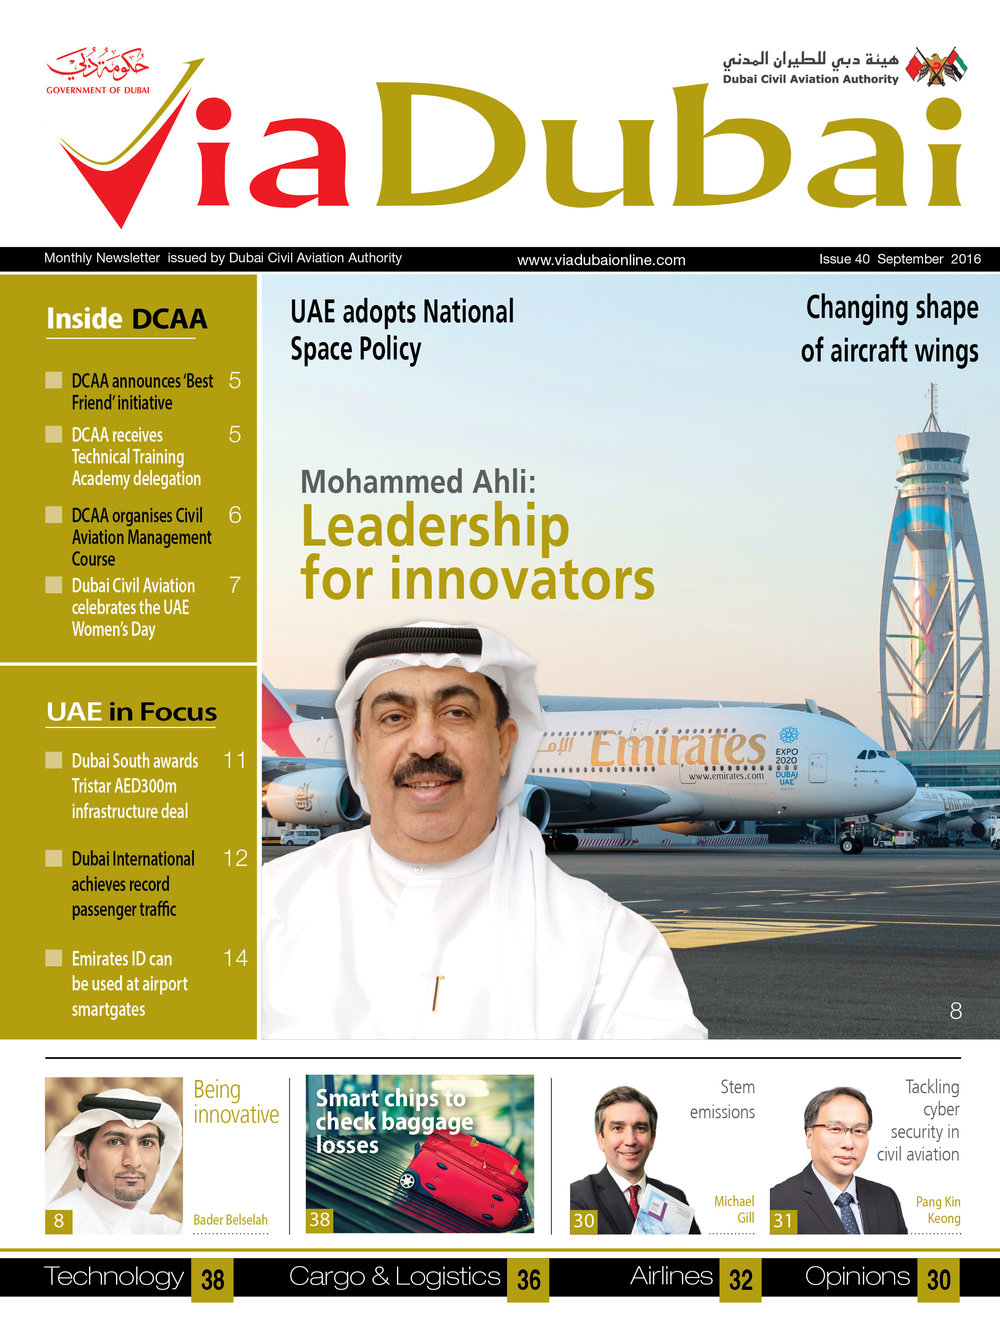 VIA DUBAI ENGLISH SEPTEMBER 2016 COVER.jpg